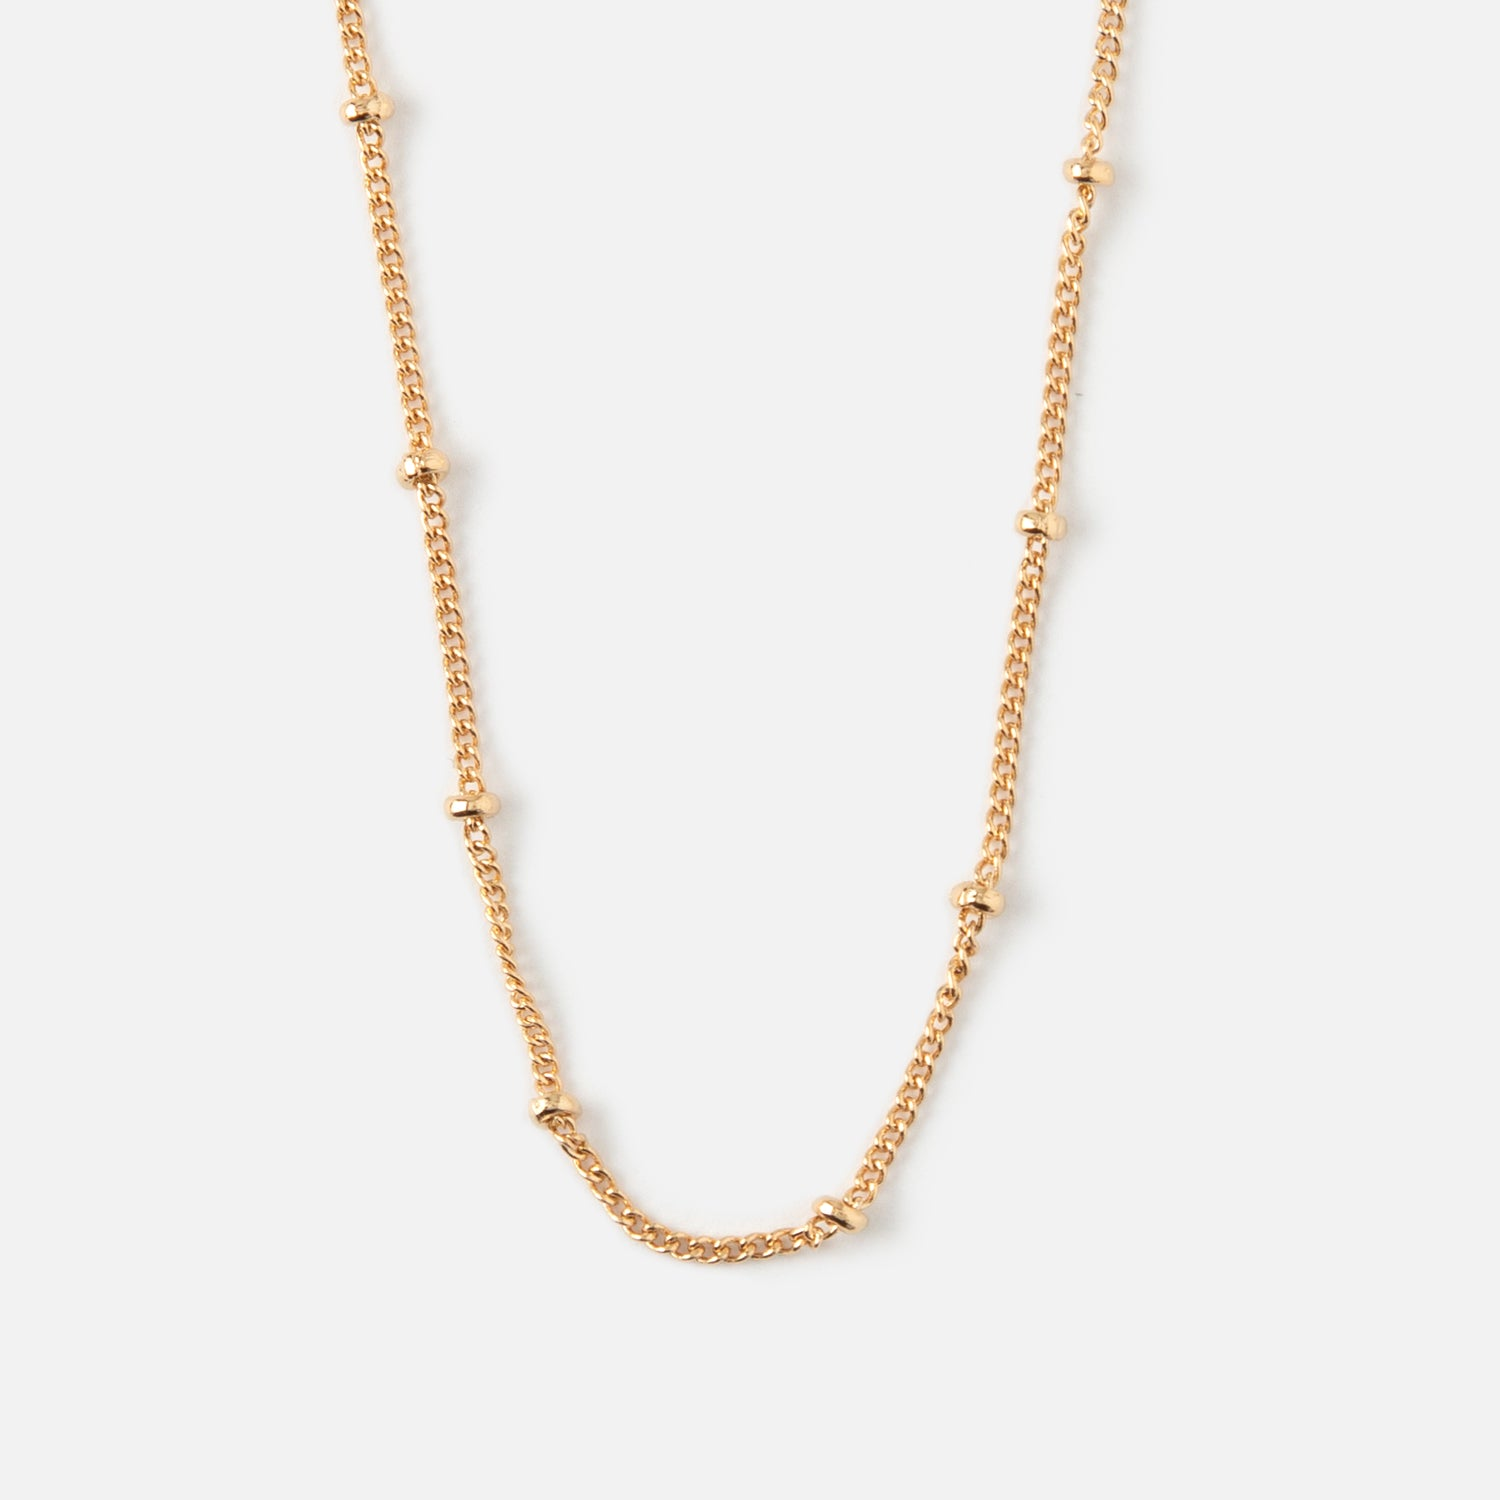 Edit Satellite Necklace Chain